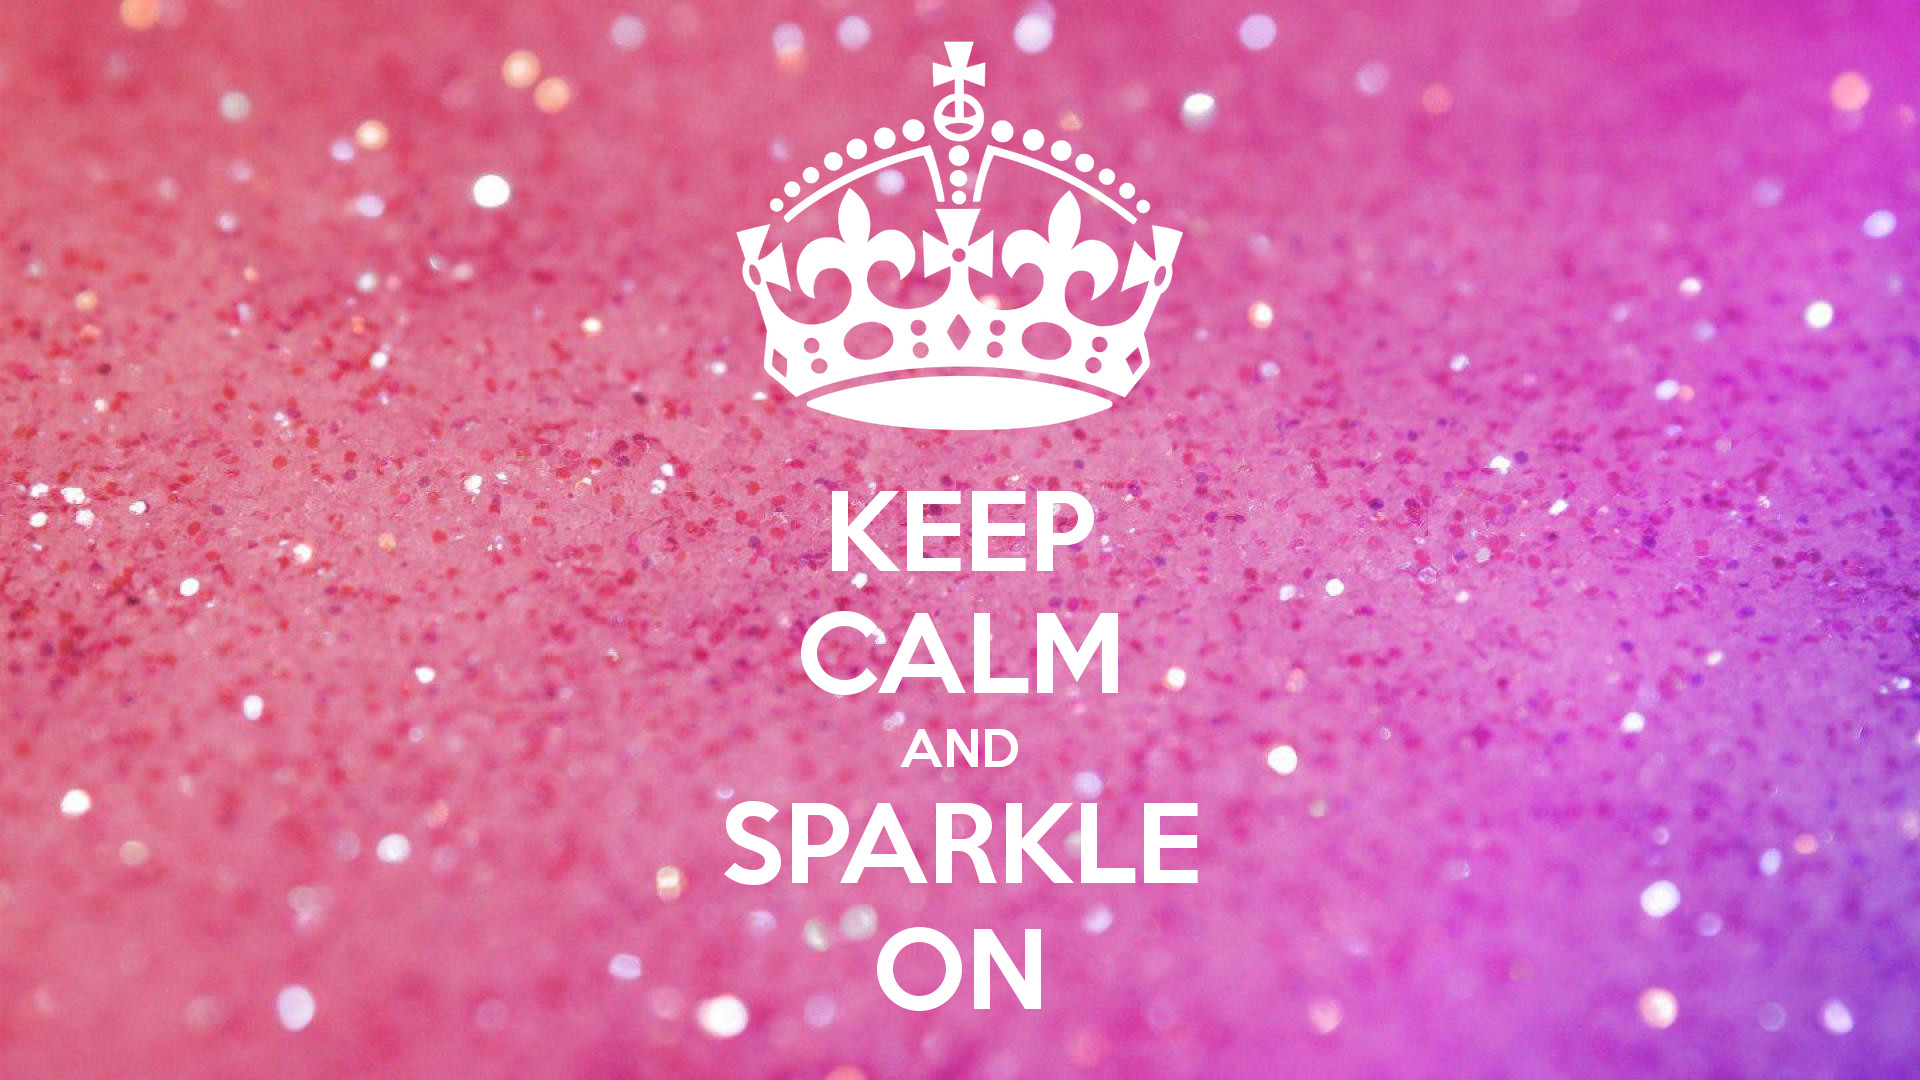 1920x1080 KEEP CALM AND SPARKLE ON - KEEP CALM AND CARRY ON Image .